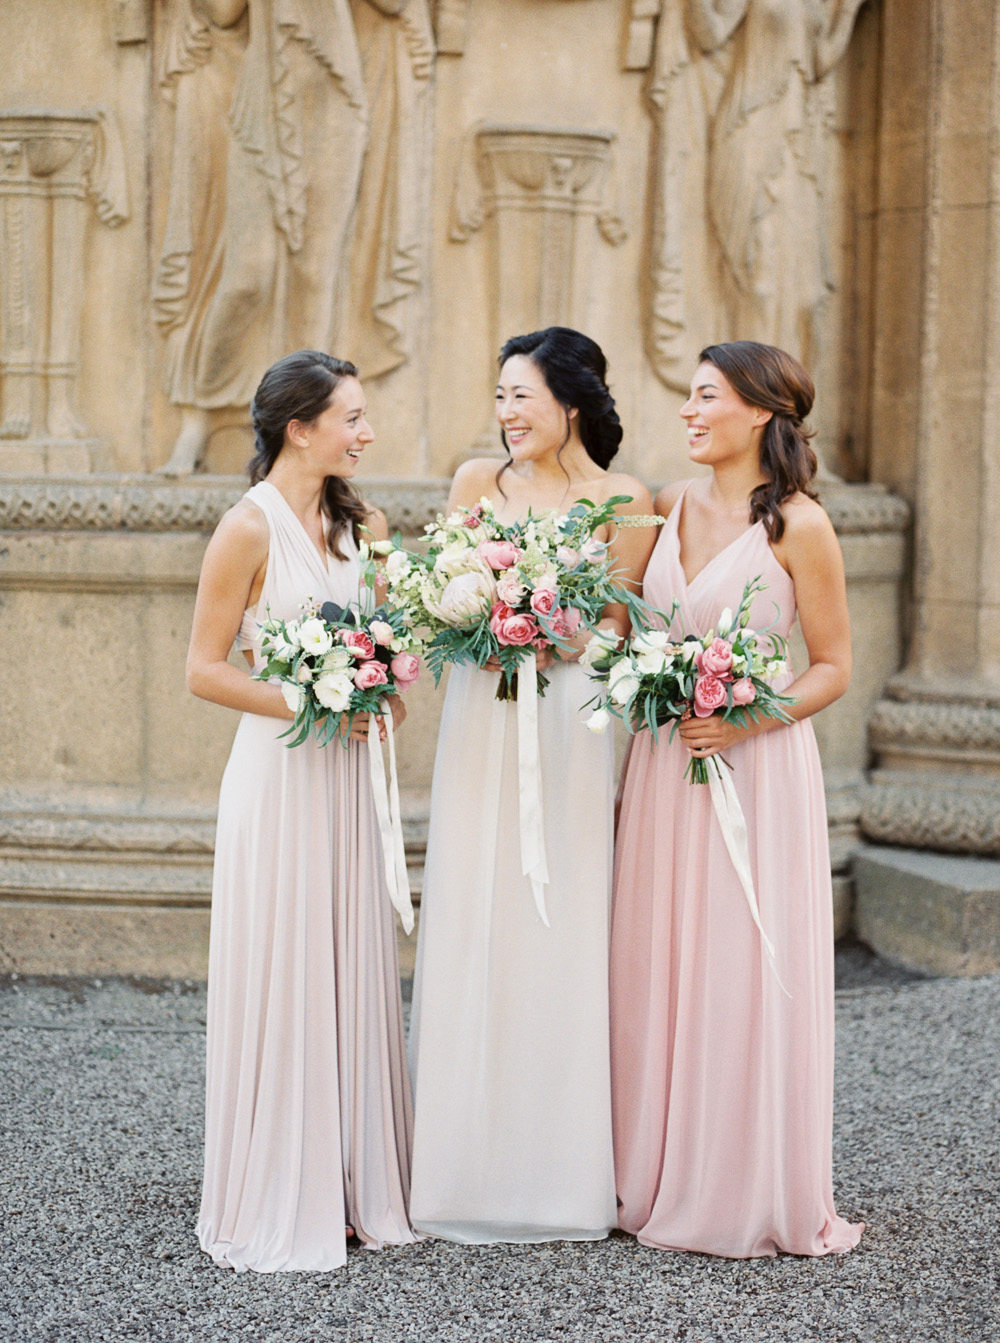 pink bridesmaid dresses inspiration for blush wedding   | by Lara Lam photography